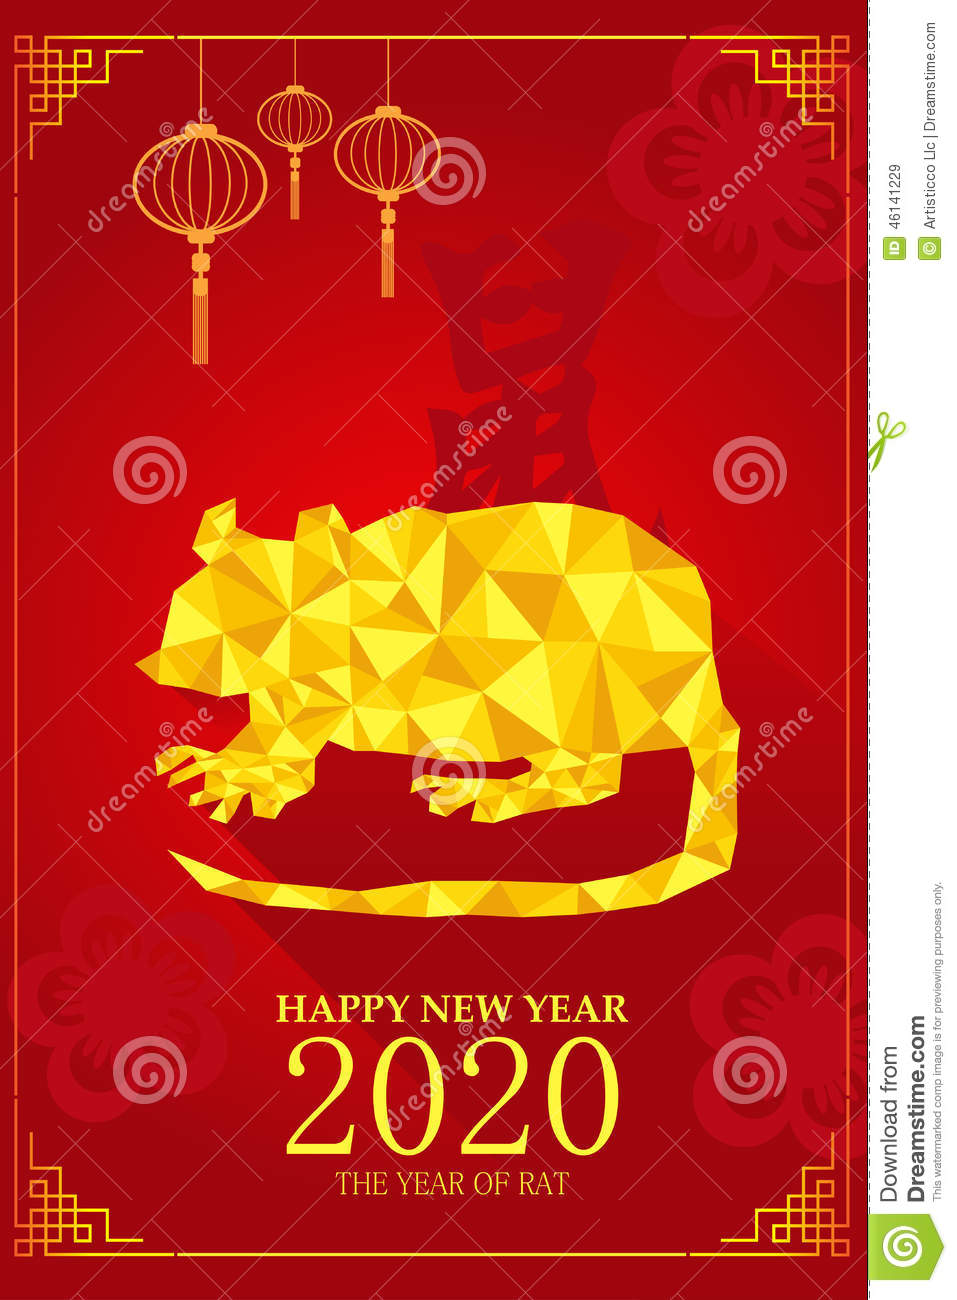 Year At A Glance Inspire2rise Turns 3 Years Old: Chinese New Year Design For Year Of Rat Stock Vector